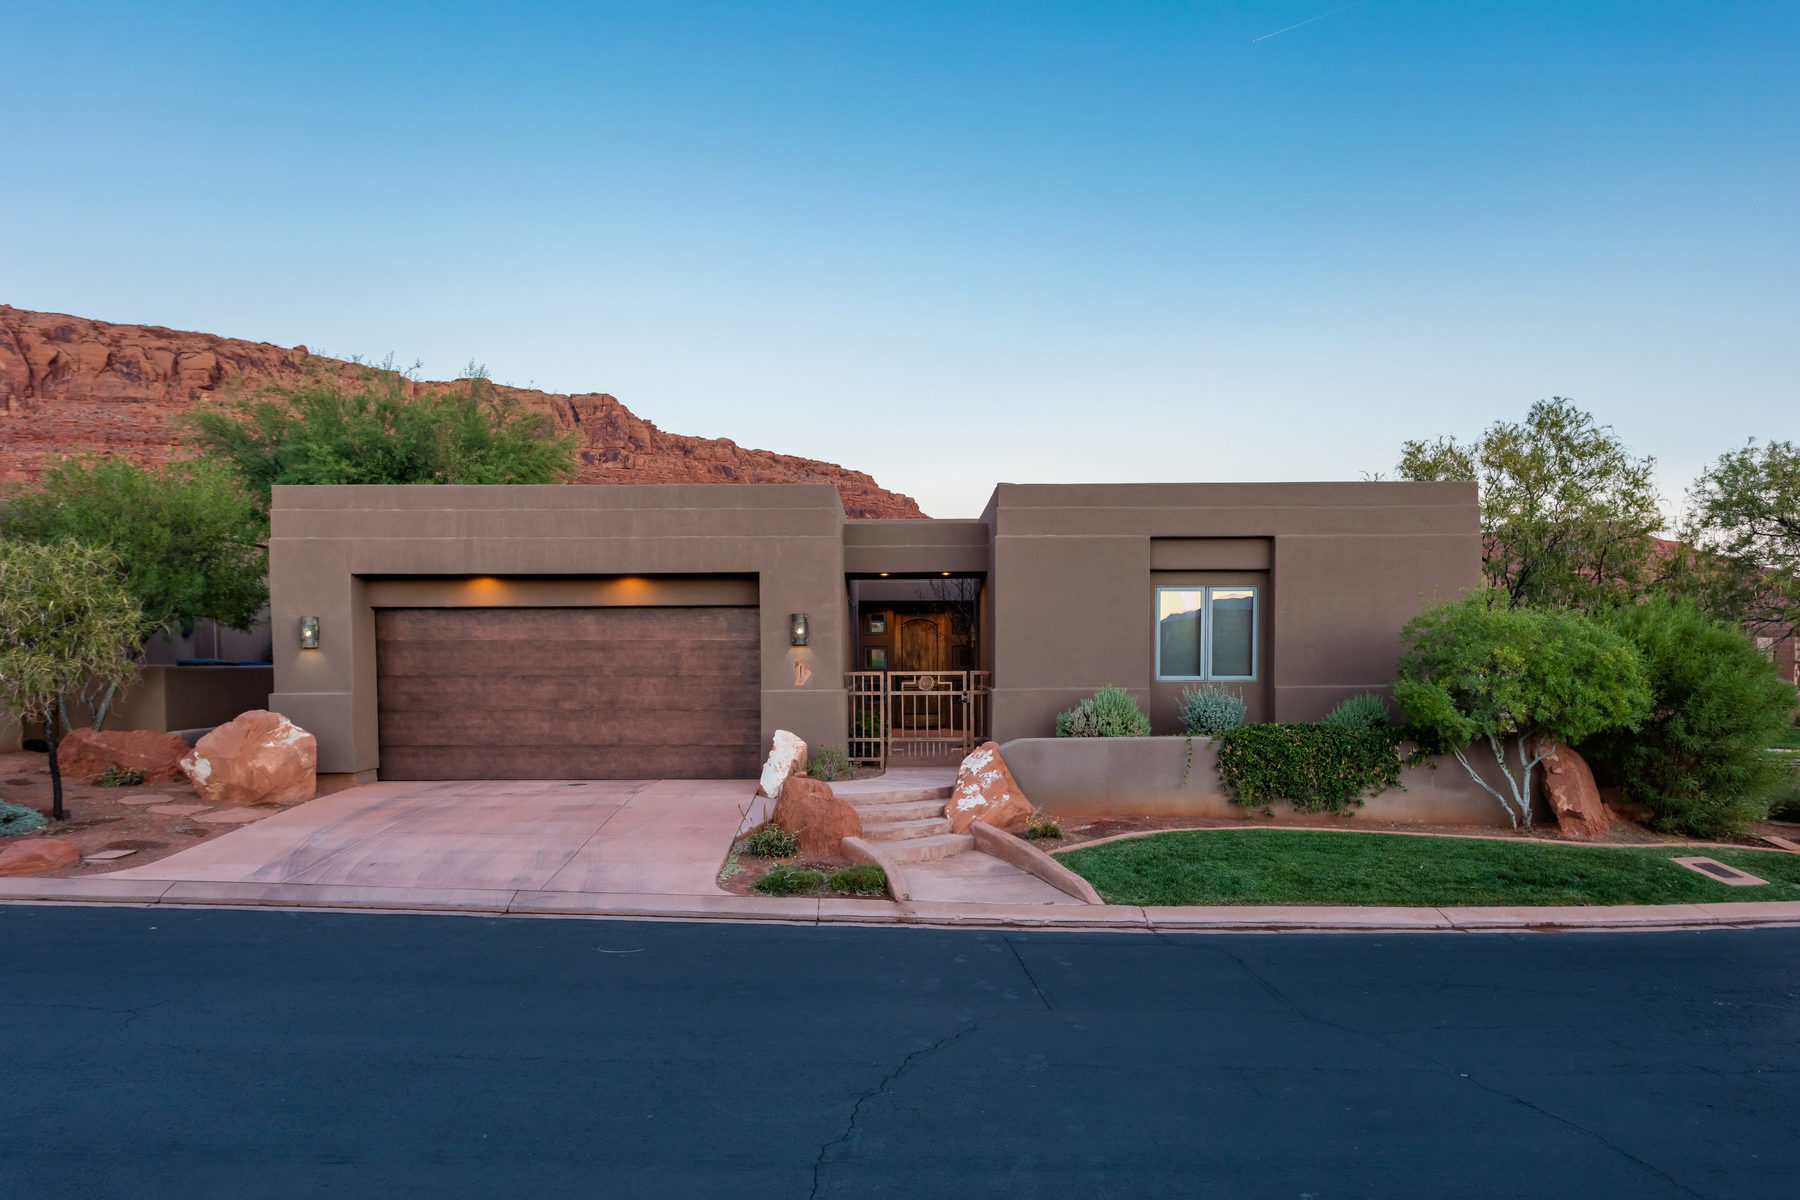 Maison unifamiliale pour l Vente à 5 Bedroom Kachina Springs Home 2410 W Entrada Trail #1 St. George, Utah, 84770 États-Unis